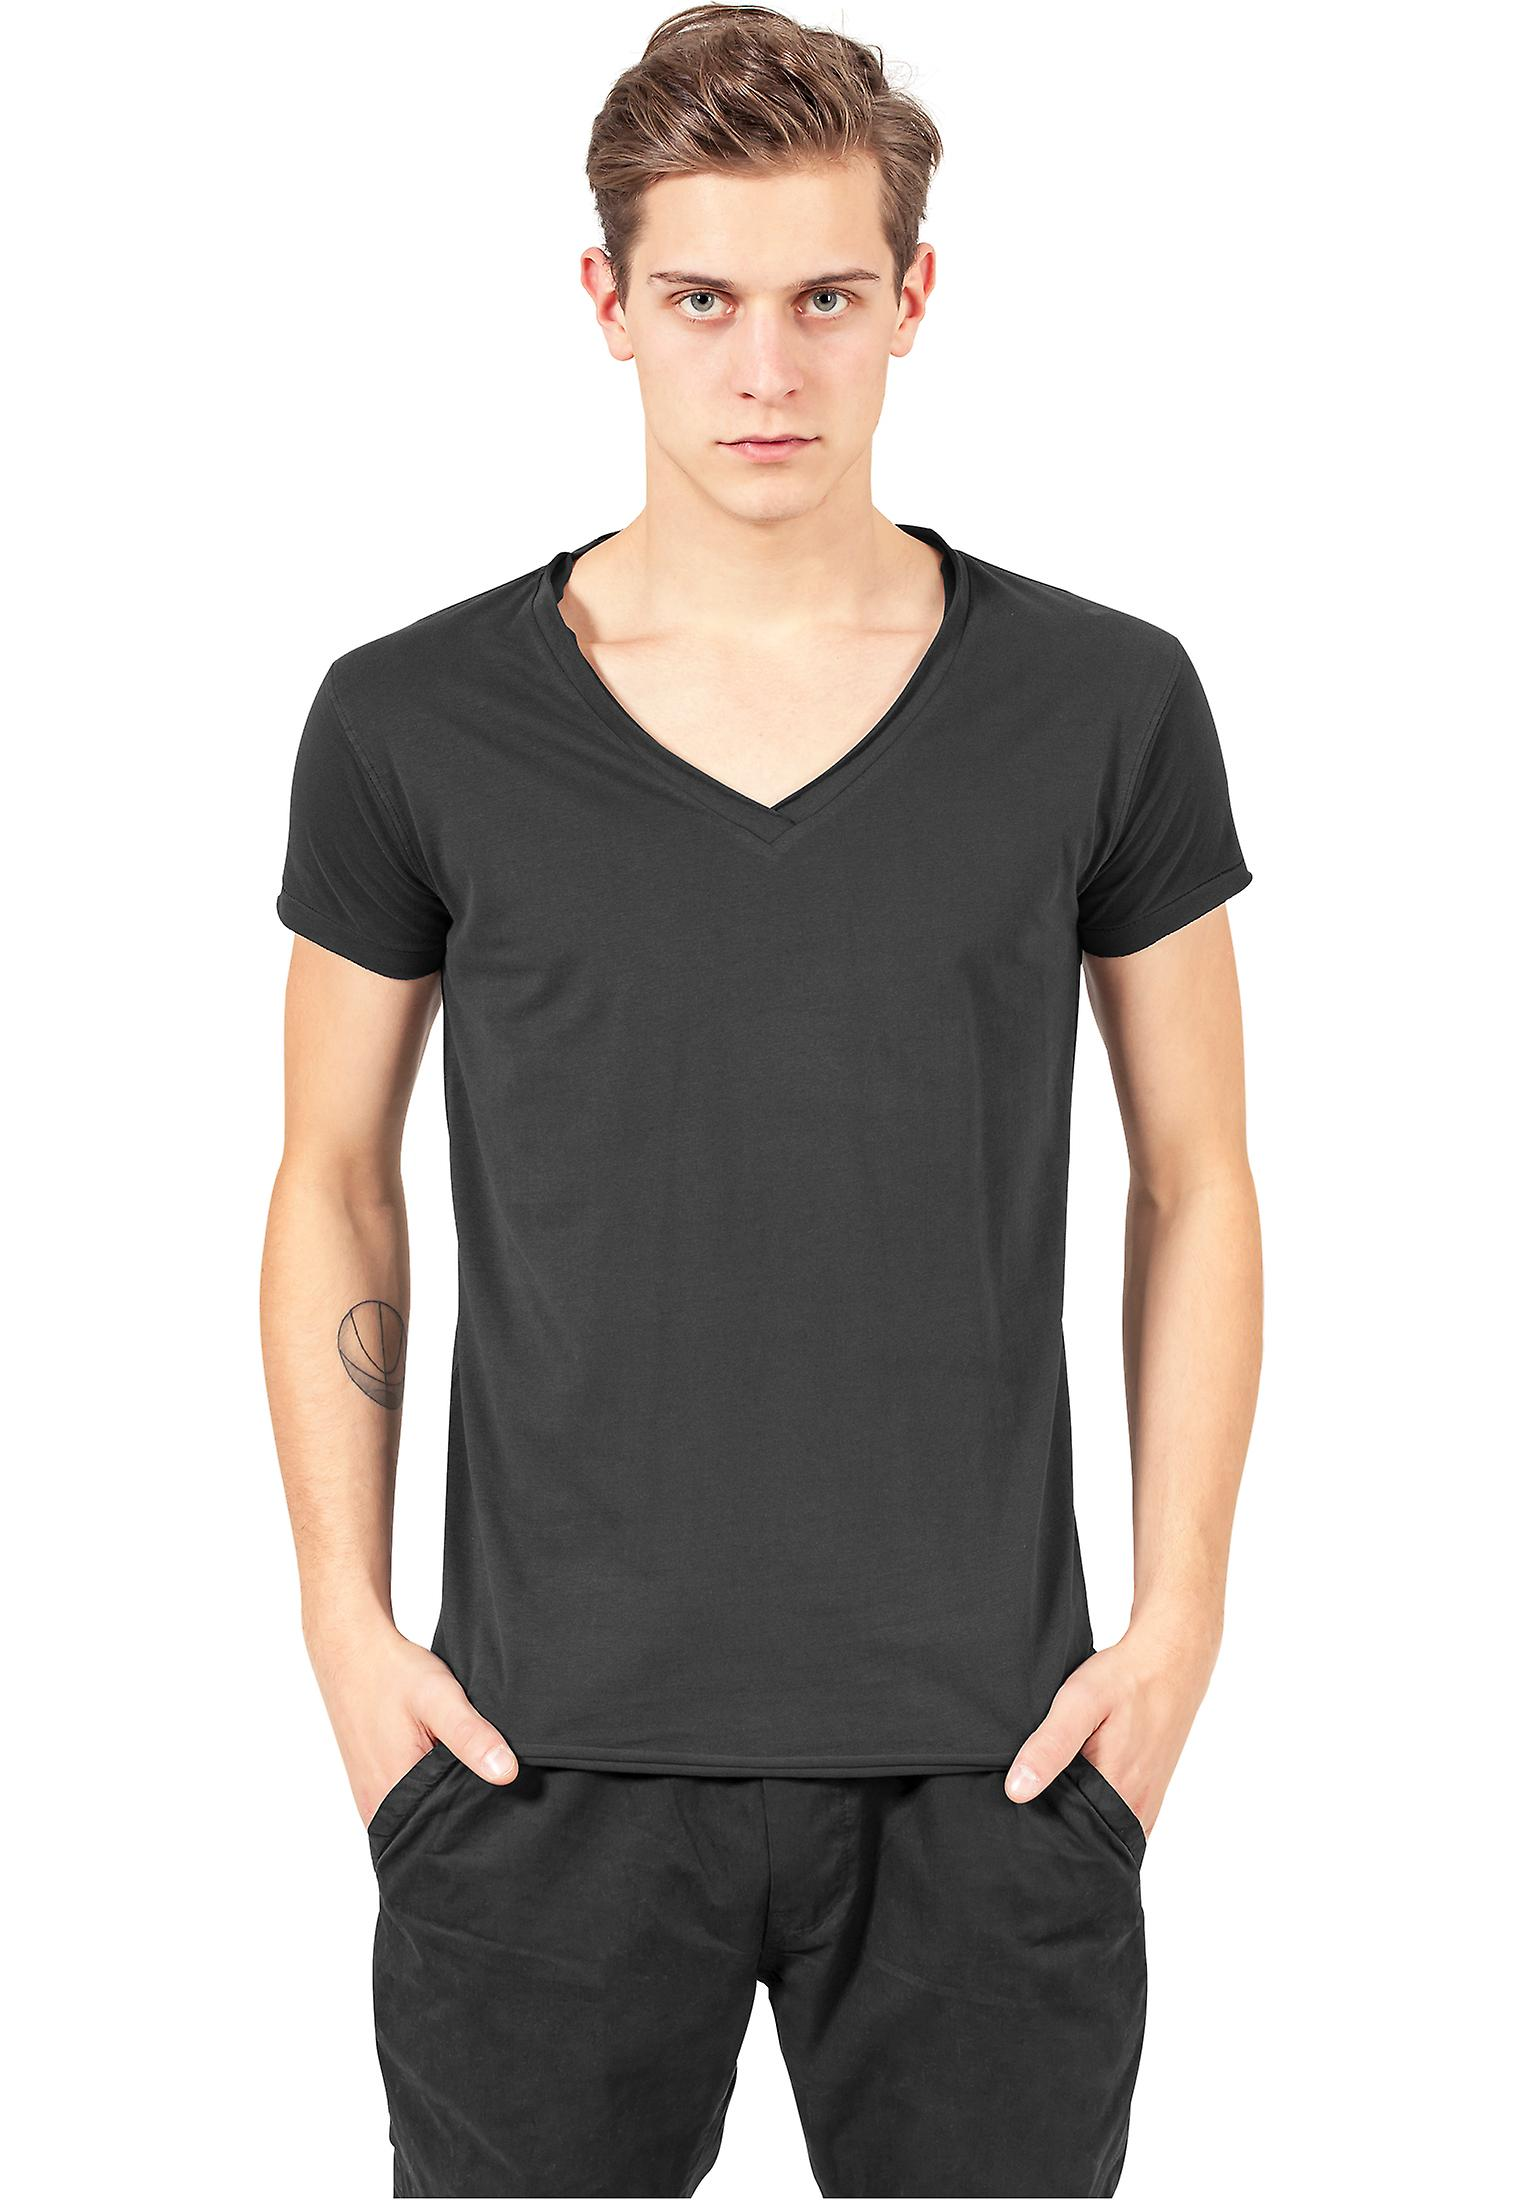 Urban classics T-Shirt fitted Peached open edge